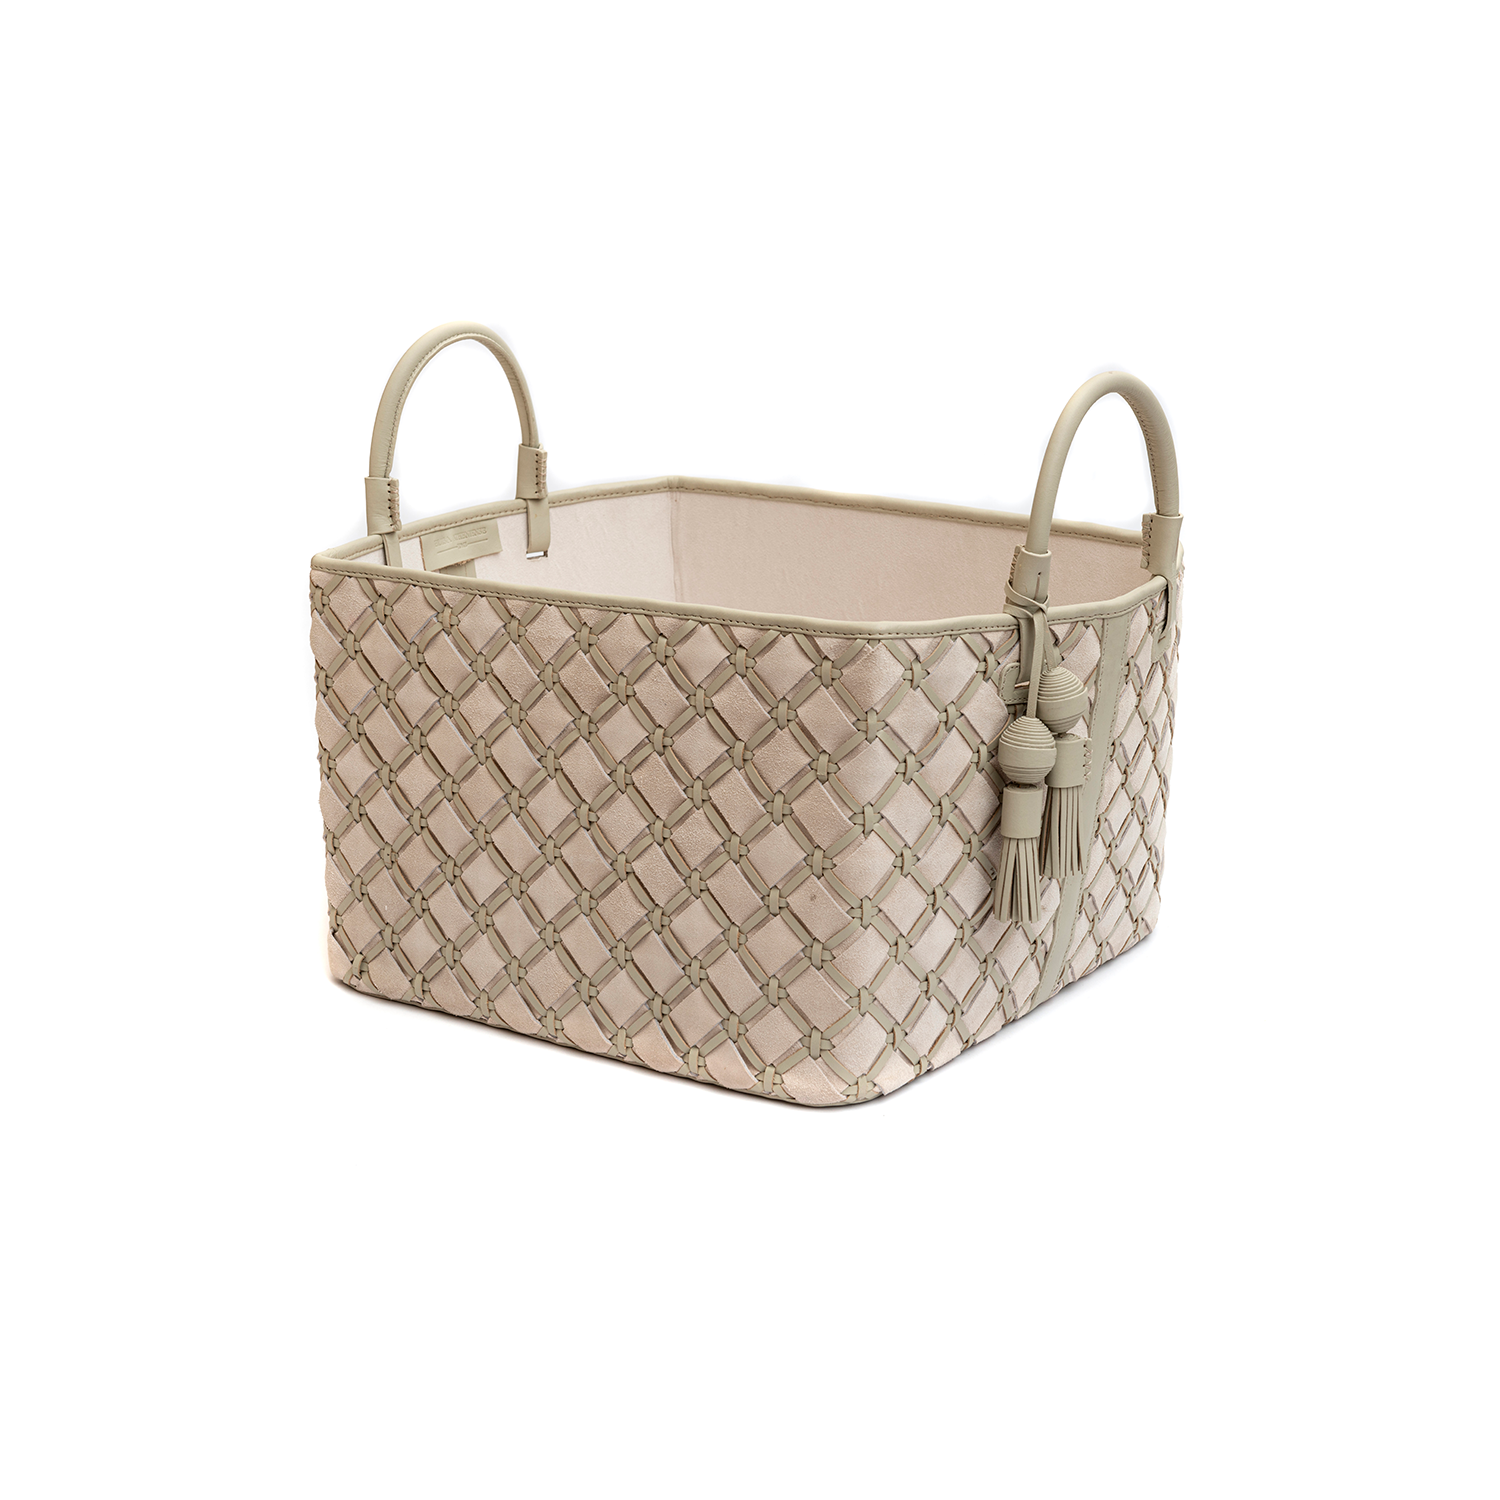 Trancoso Geometrico Woven Leather Basket - Trancoso Geometrico Woven Leather Basket is designed to complement an ambient with natural and sophisticated feeling, ideal when placed next your sofa or bed, perfect for magazines and throws storage. Elisa Atheniense woven leather pieces, are handmade and manufactured in Brazil using an exclusive treated leather that brings the soft feel and touch to every single piece. Elisa Atheniense Home Baskets have a delicate tassel attached.   The basket is available in two sizes. Bespoke sizes are also available under project request as well as colours, see colour chart for reference. | Matter of Stuff